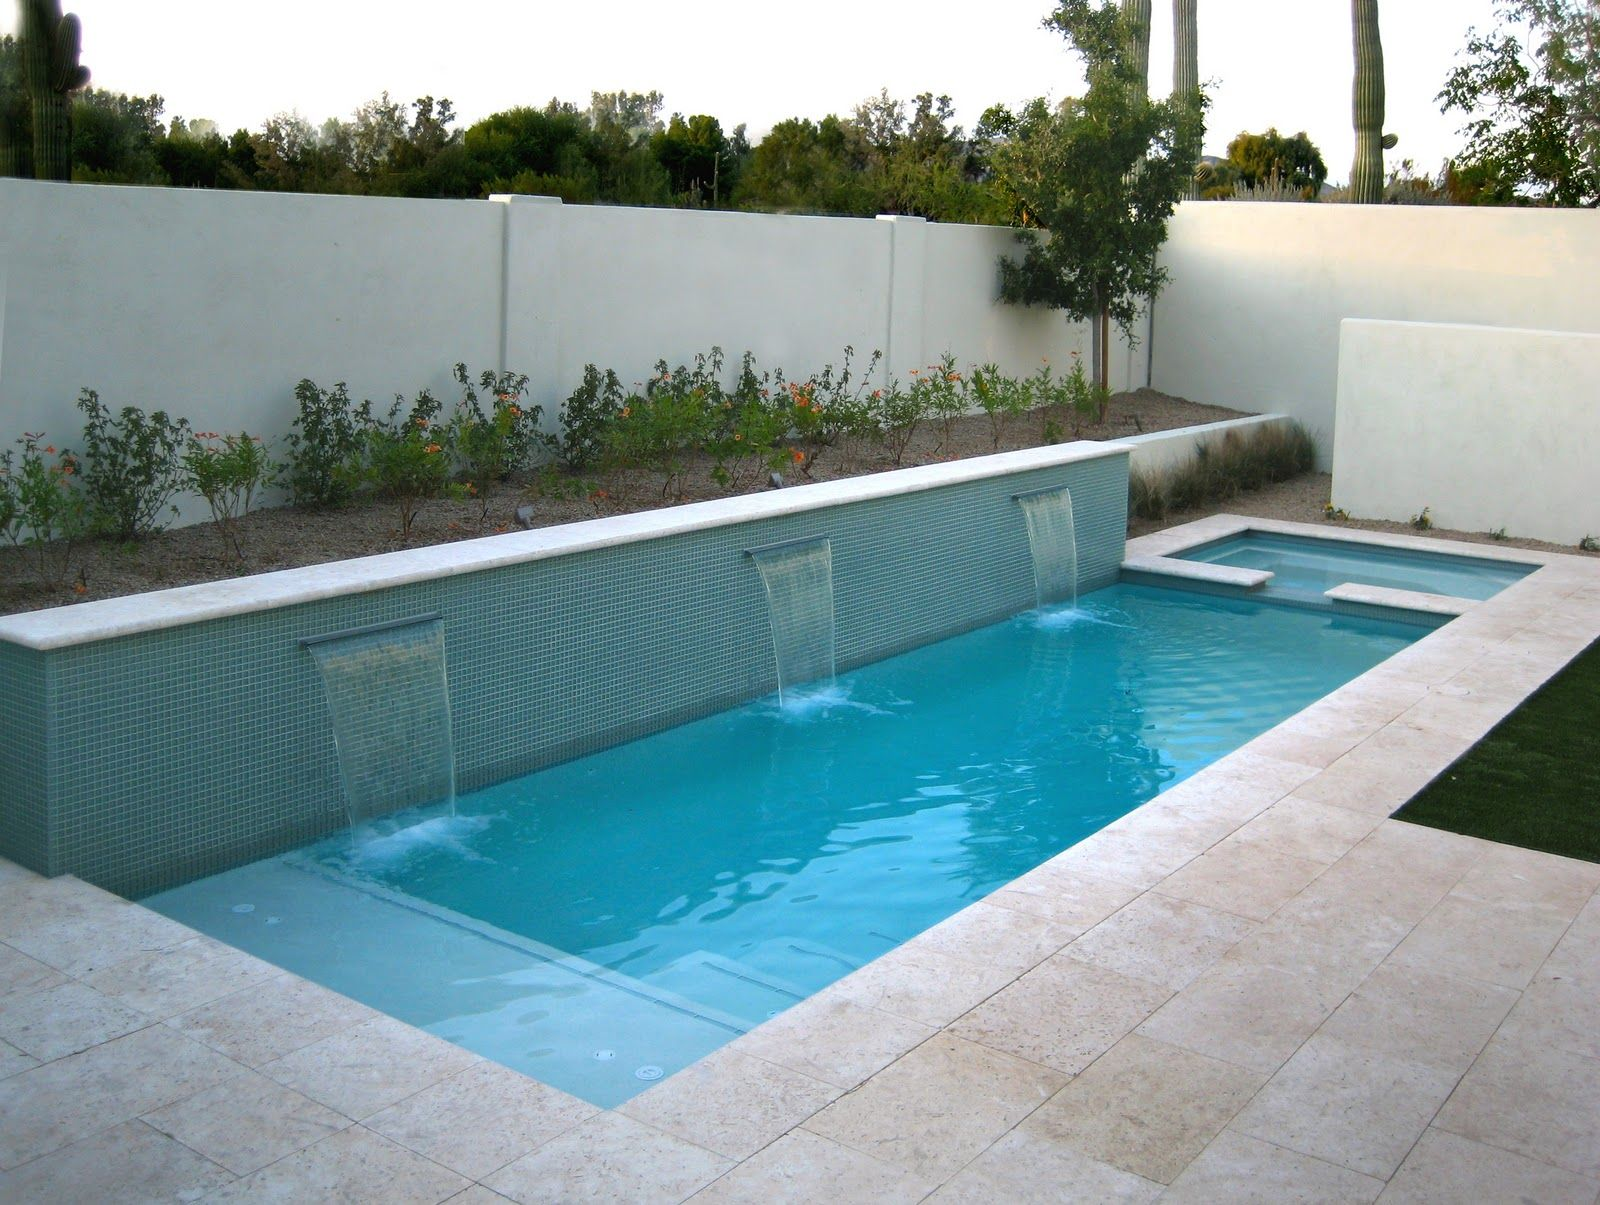 From These Small Pool Pictures You Can See The Beautiful Pool